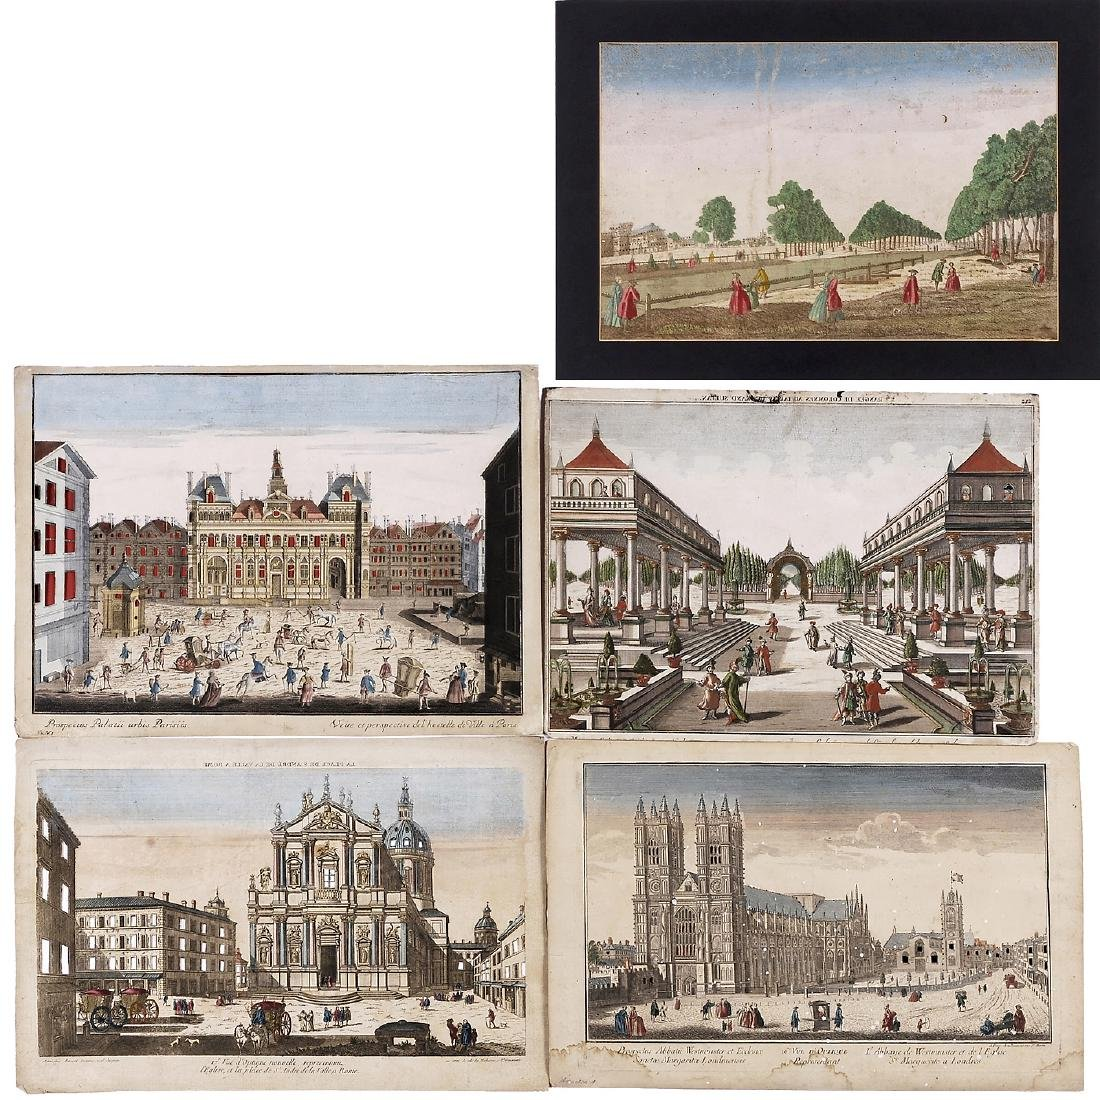 5 Day-and-Night Vues d'Optique, c. 1800-1850